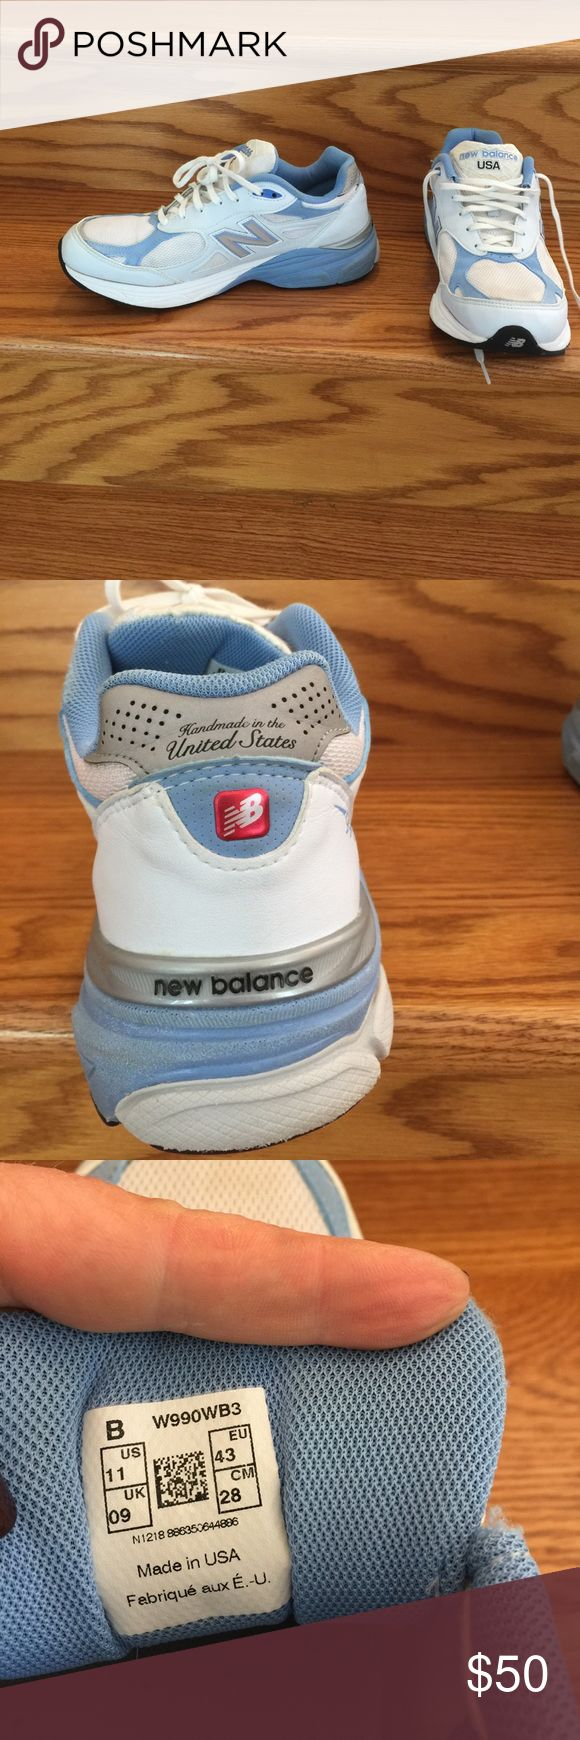 Sneakers New Balance, Made in USA, 990 style, size 11, used but in good condition New Balance Shoes Sneakers